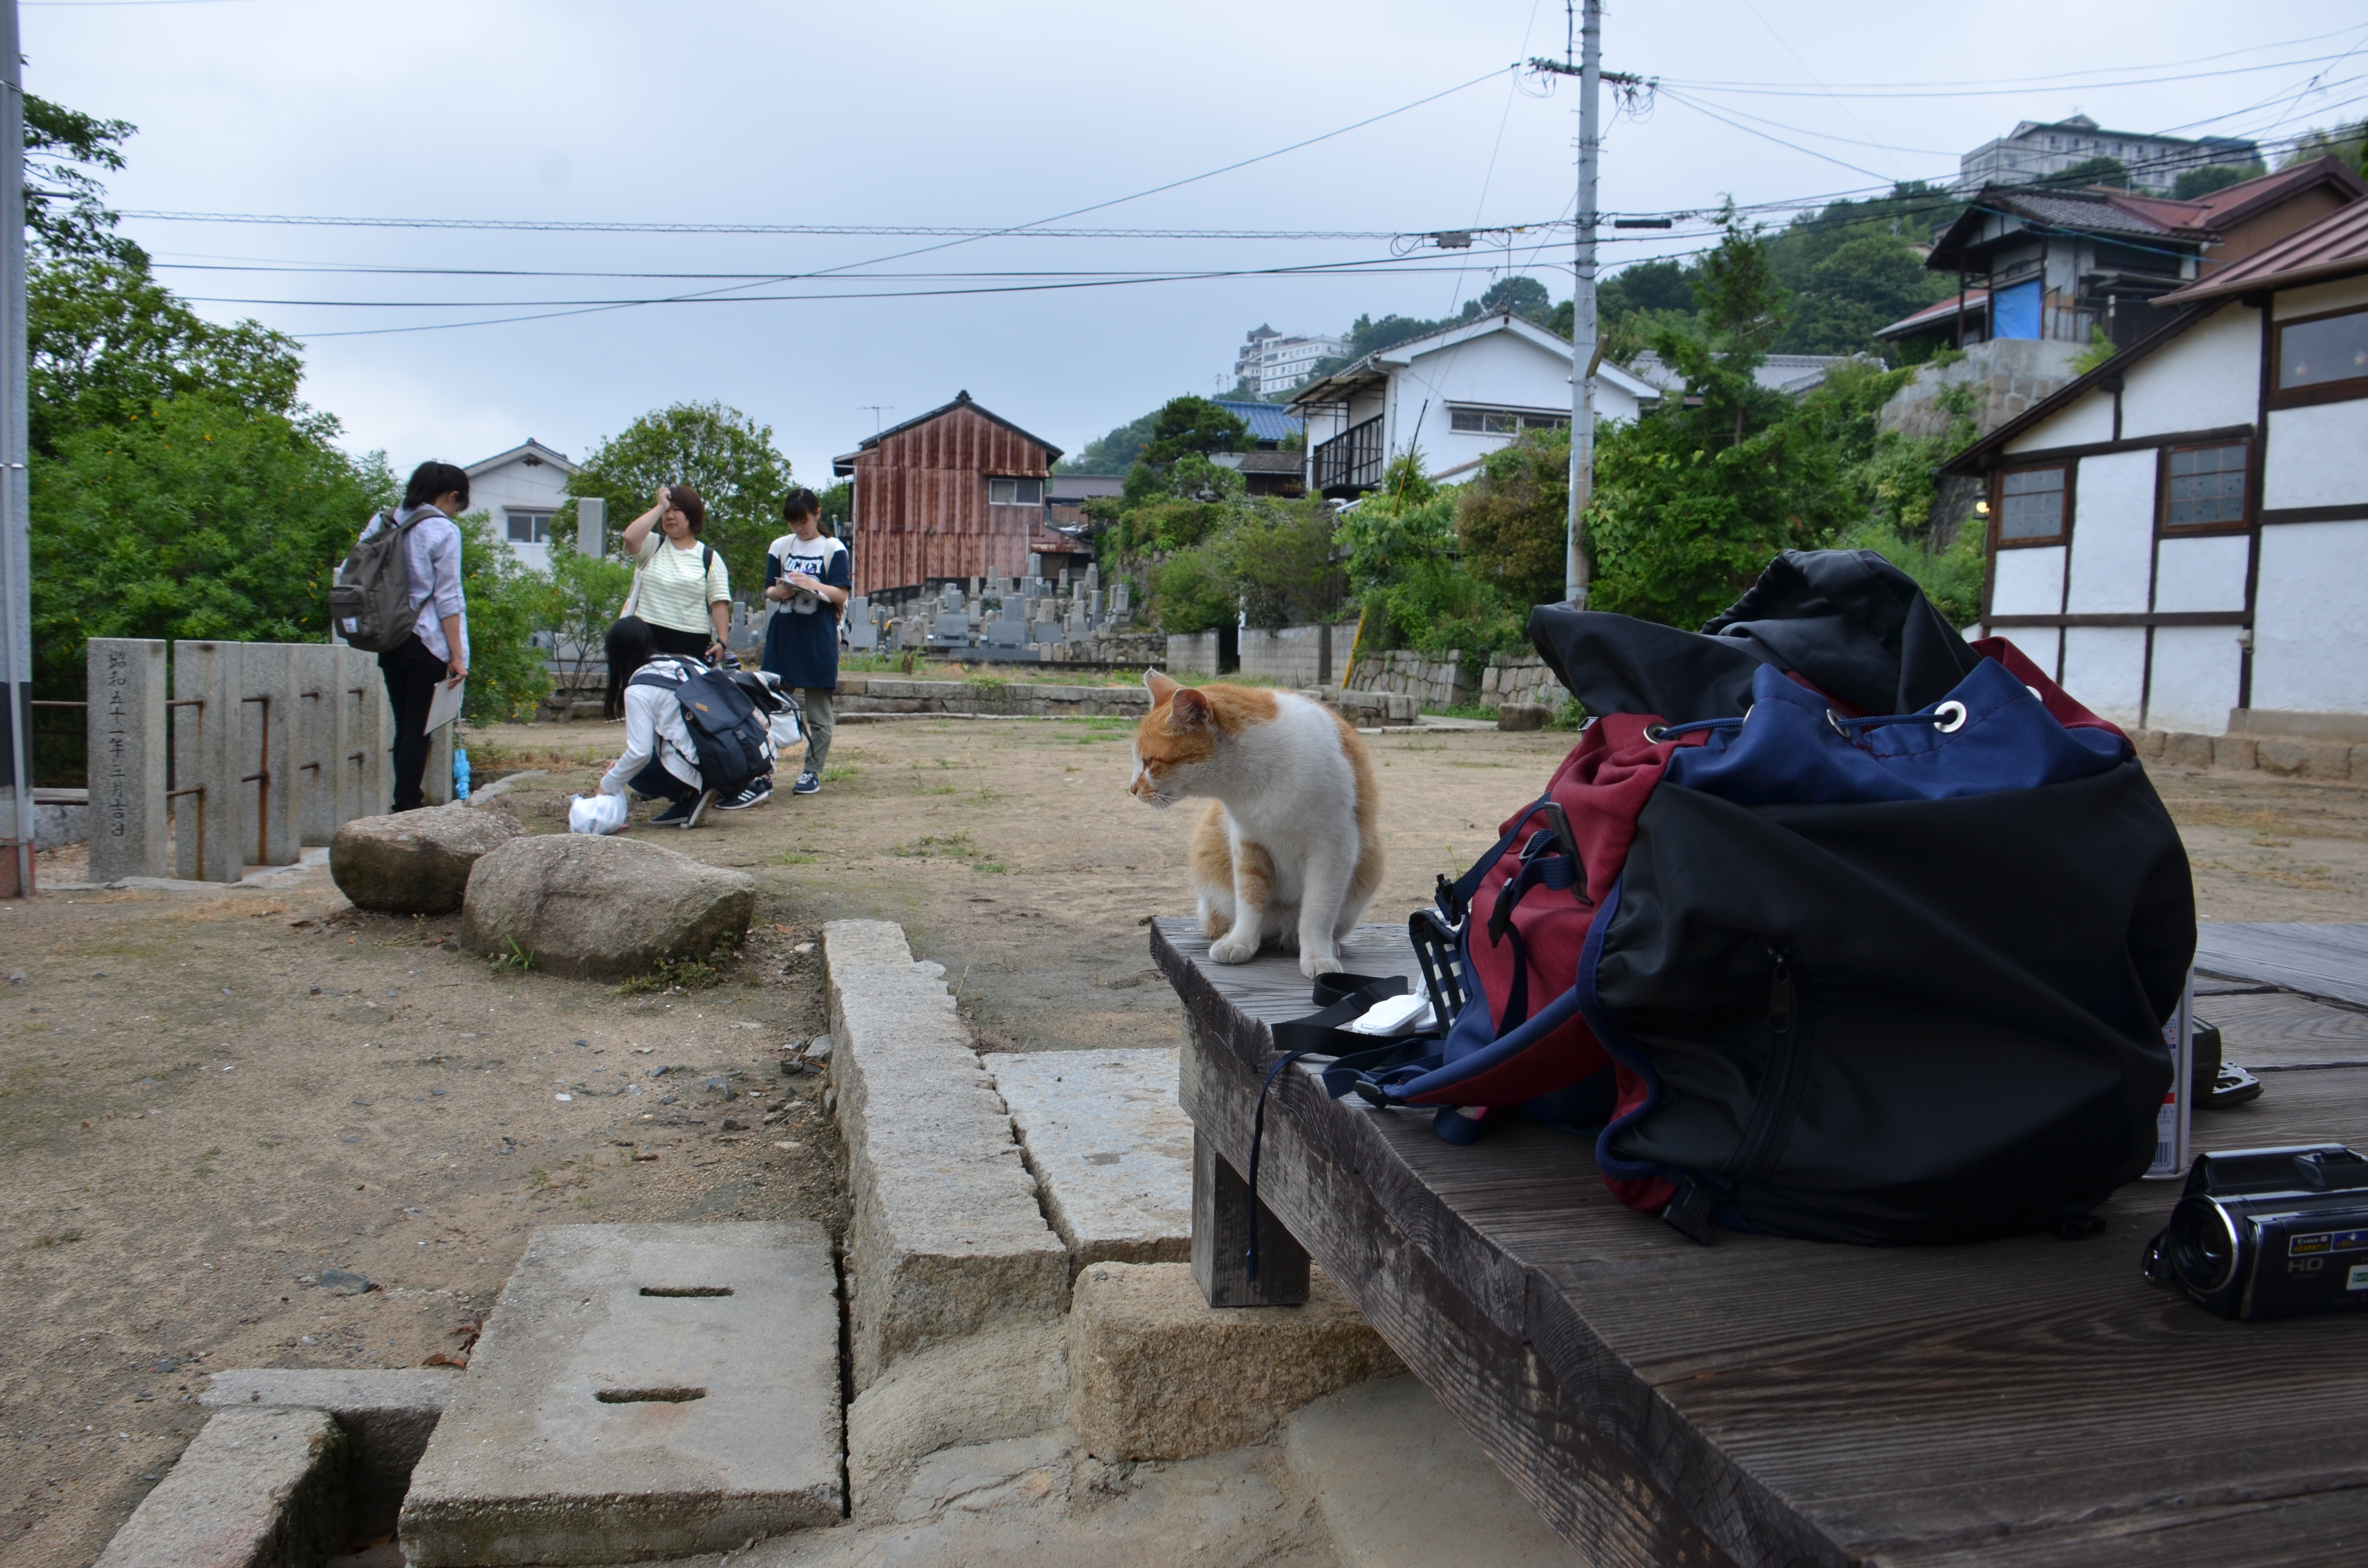 Stephany Ota and some students collecting and cleaning up cat feces